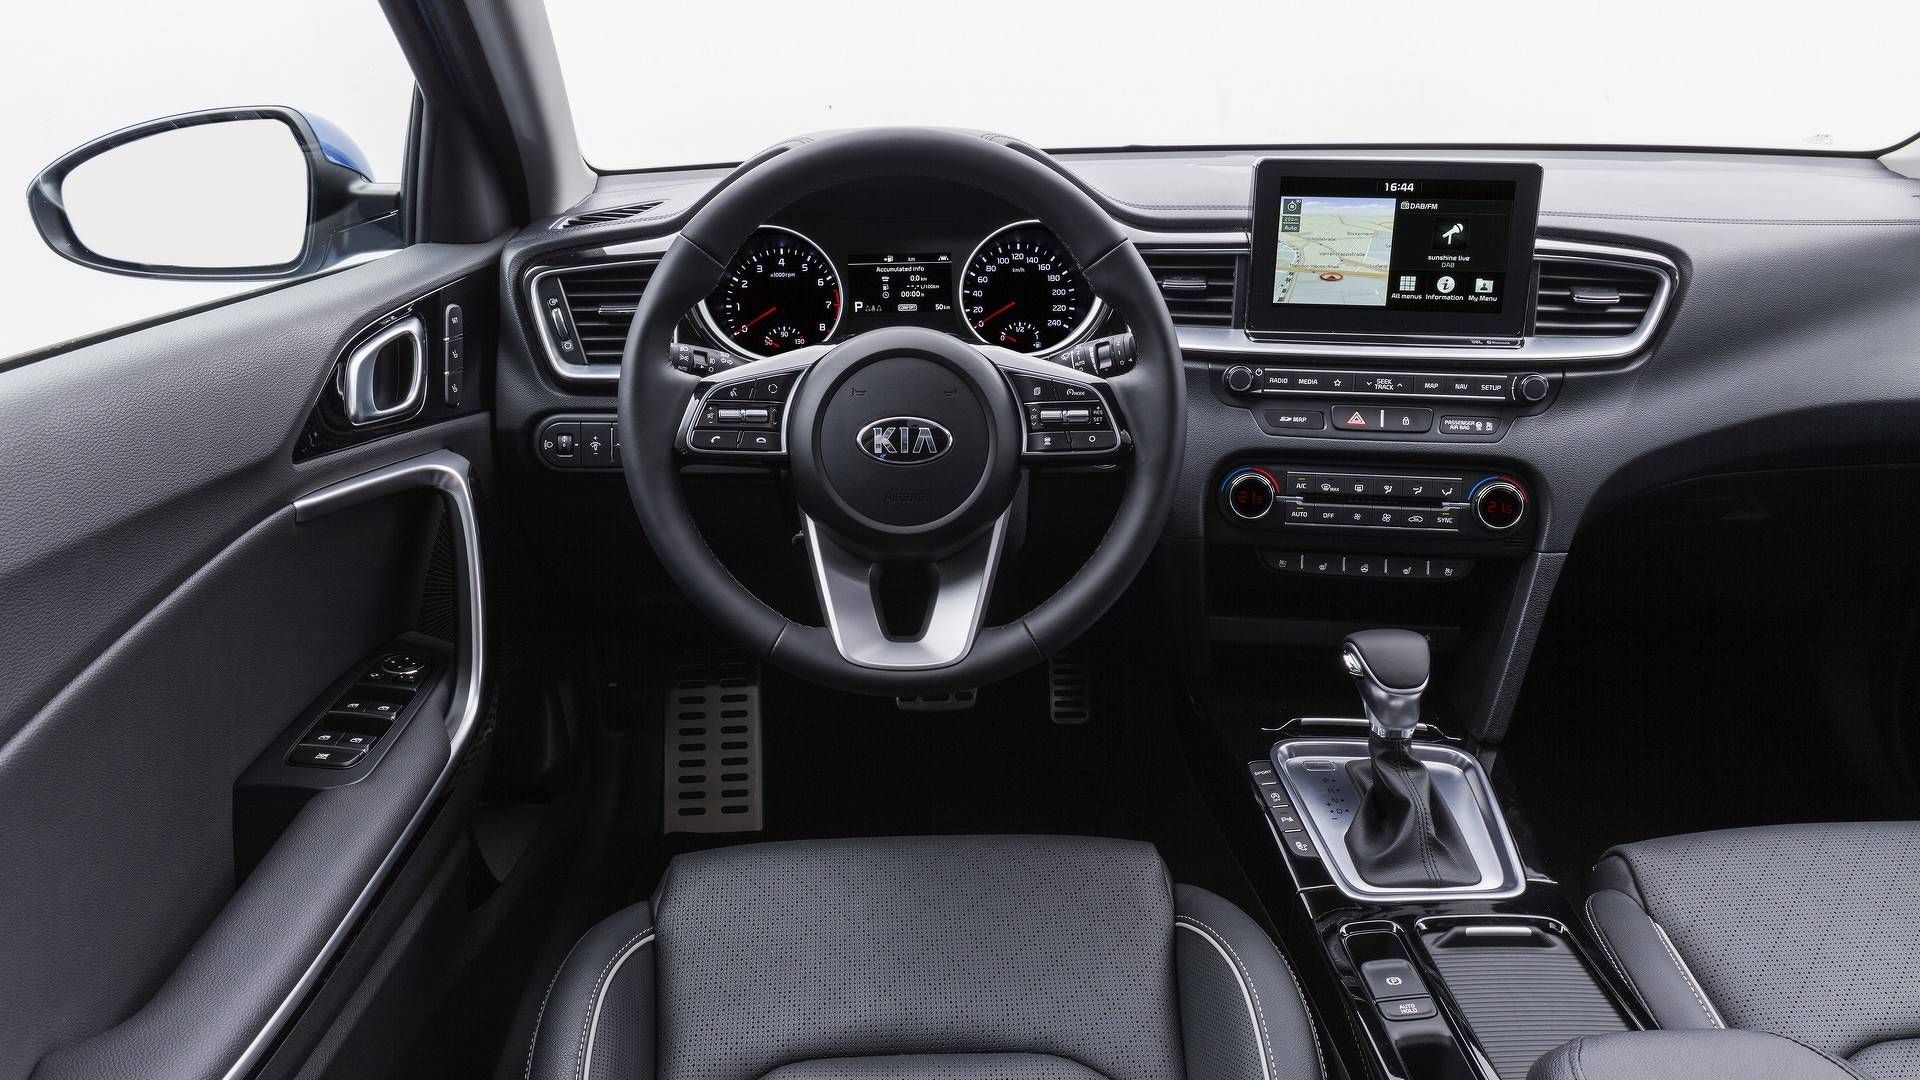 KIA Ceed 2018 interior | Cars | Pinterest | Cars és Interior